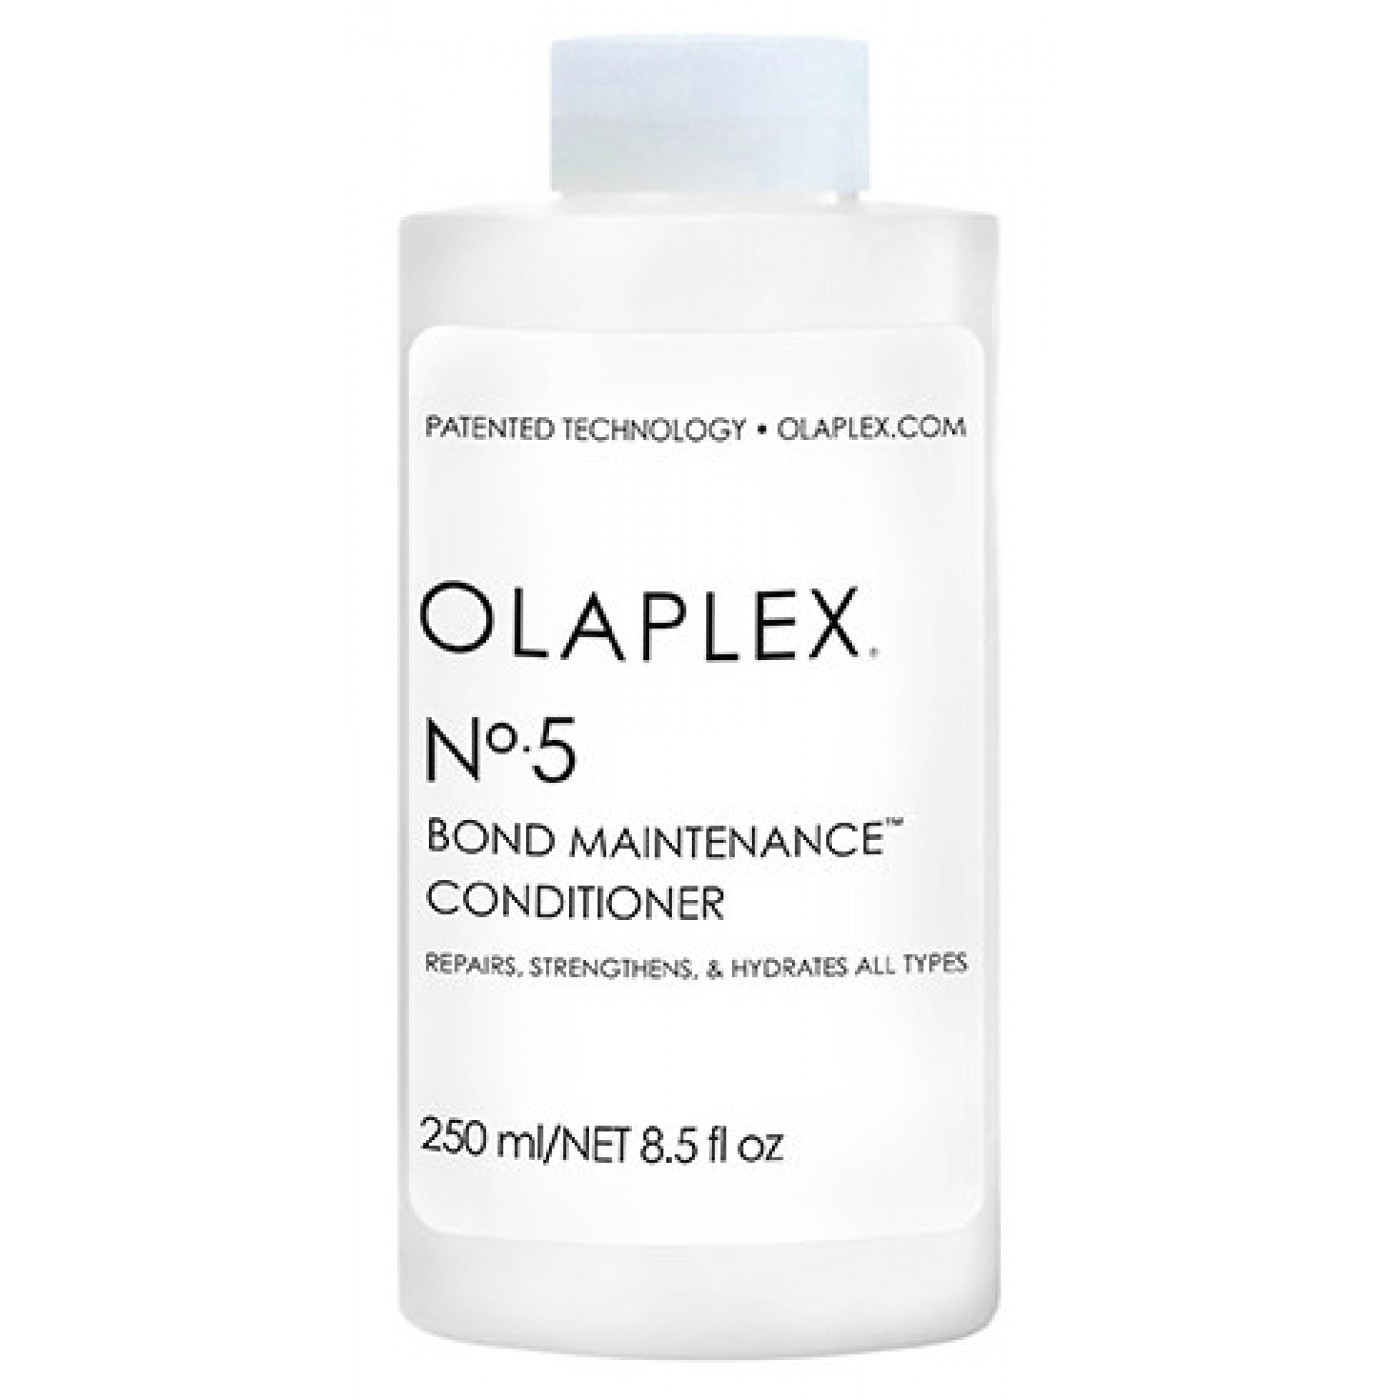 OLAPLEX Bond Maintenance Conditioner N° 5 250 ml